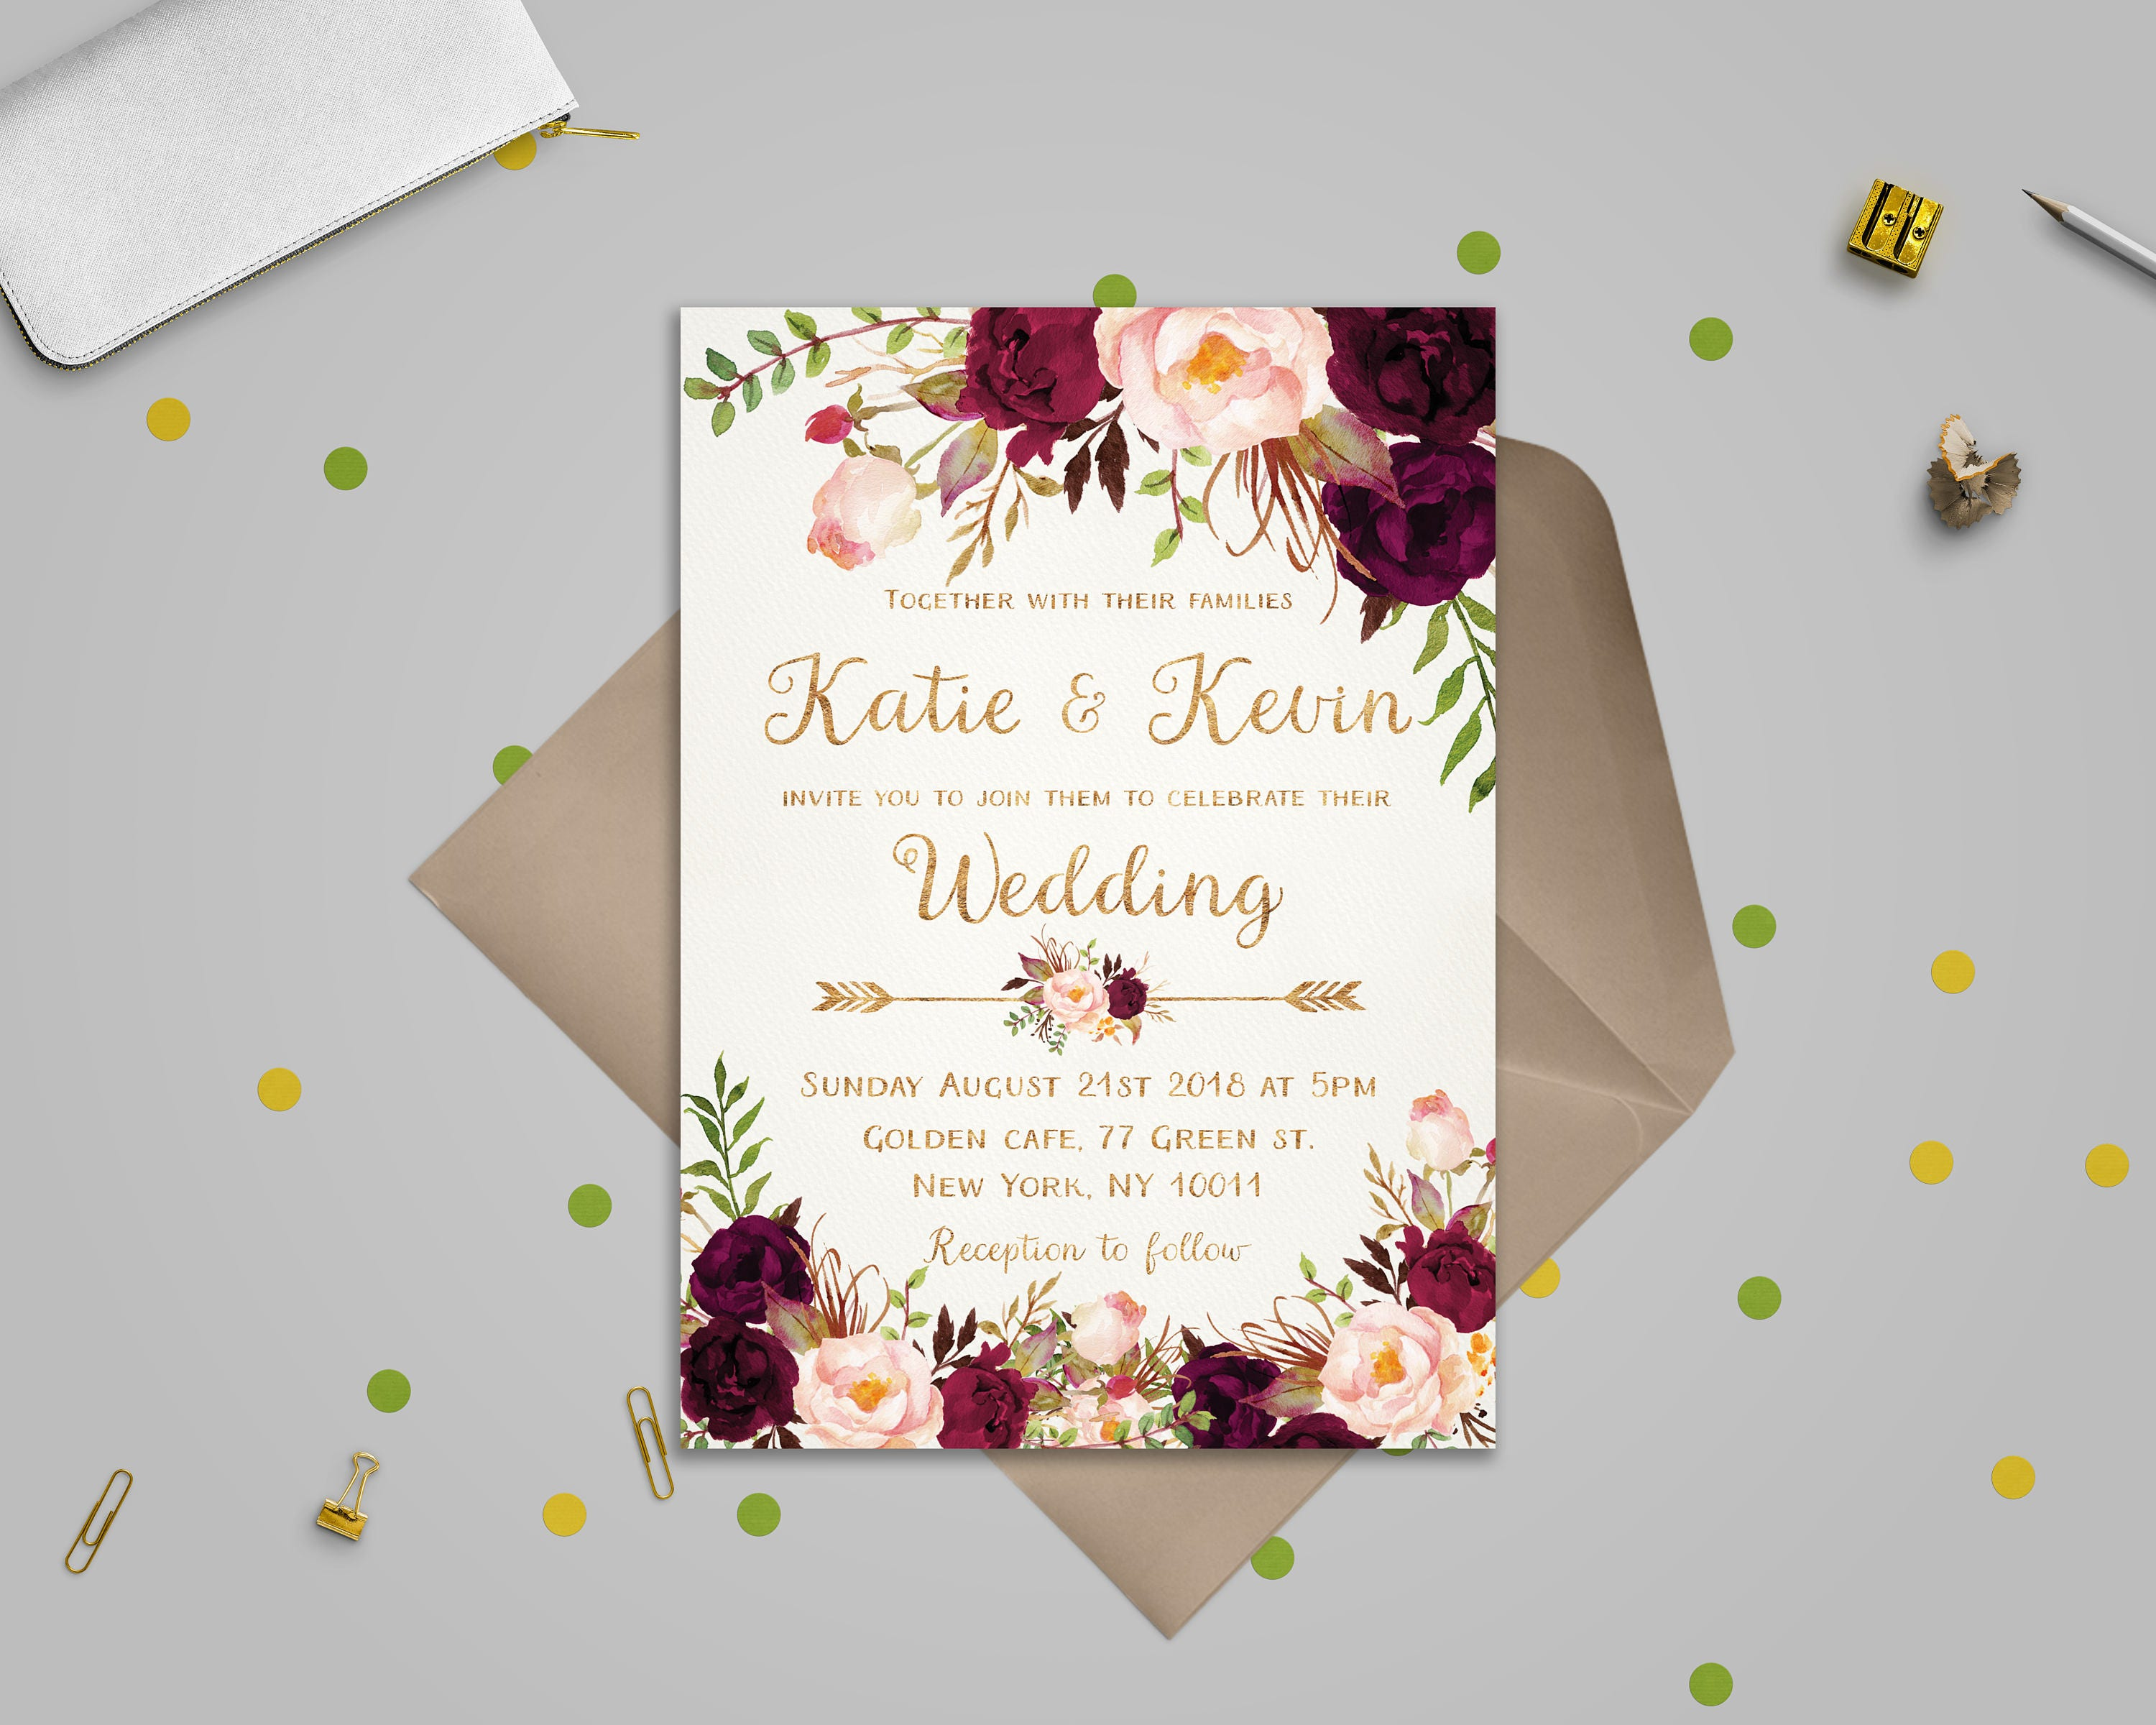 Invitation Wedding Card: Floral Wedding Invitation Template Wedding Invitation